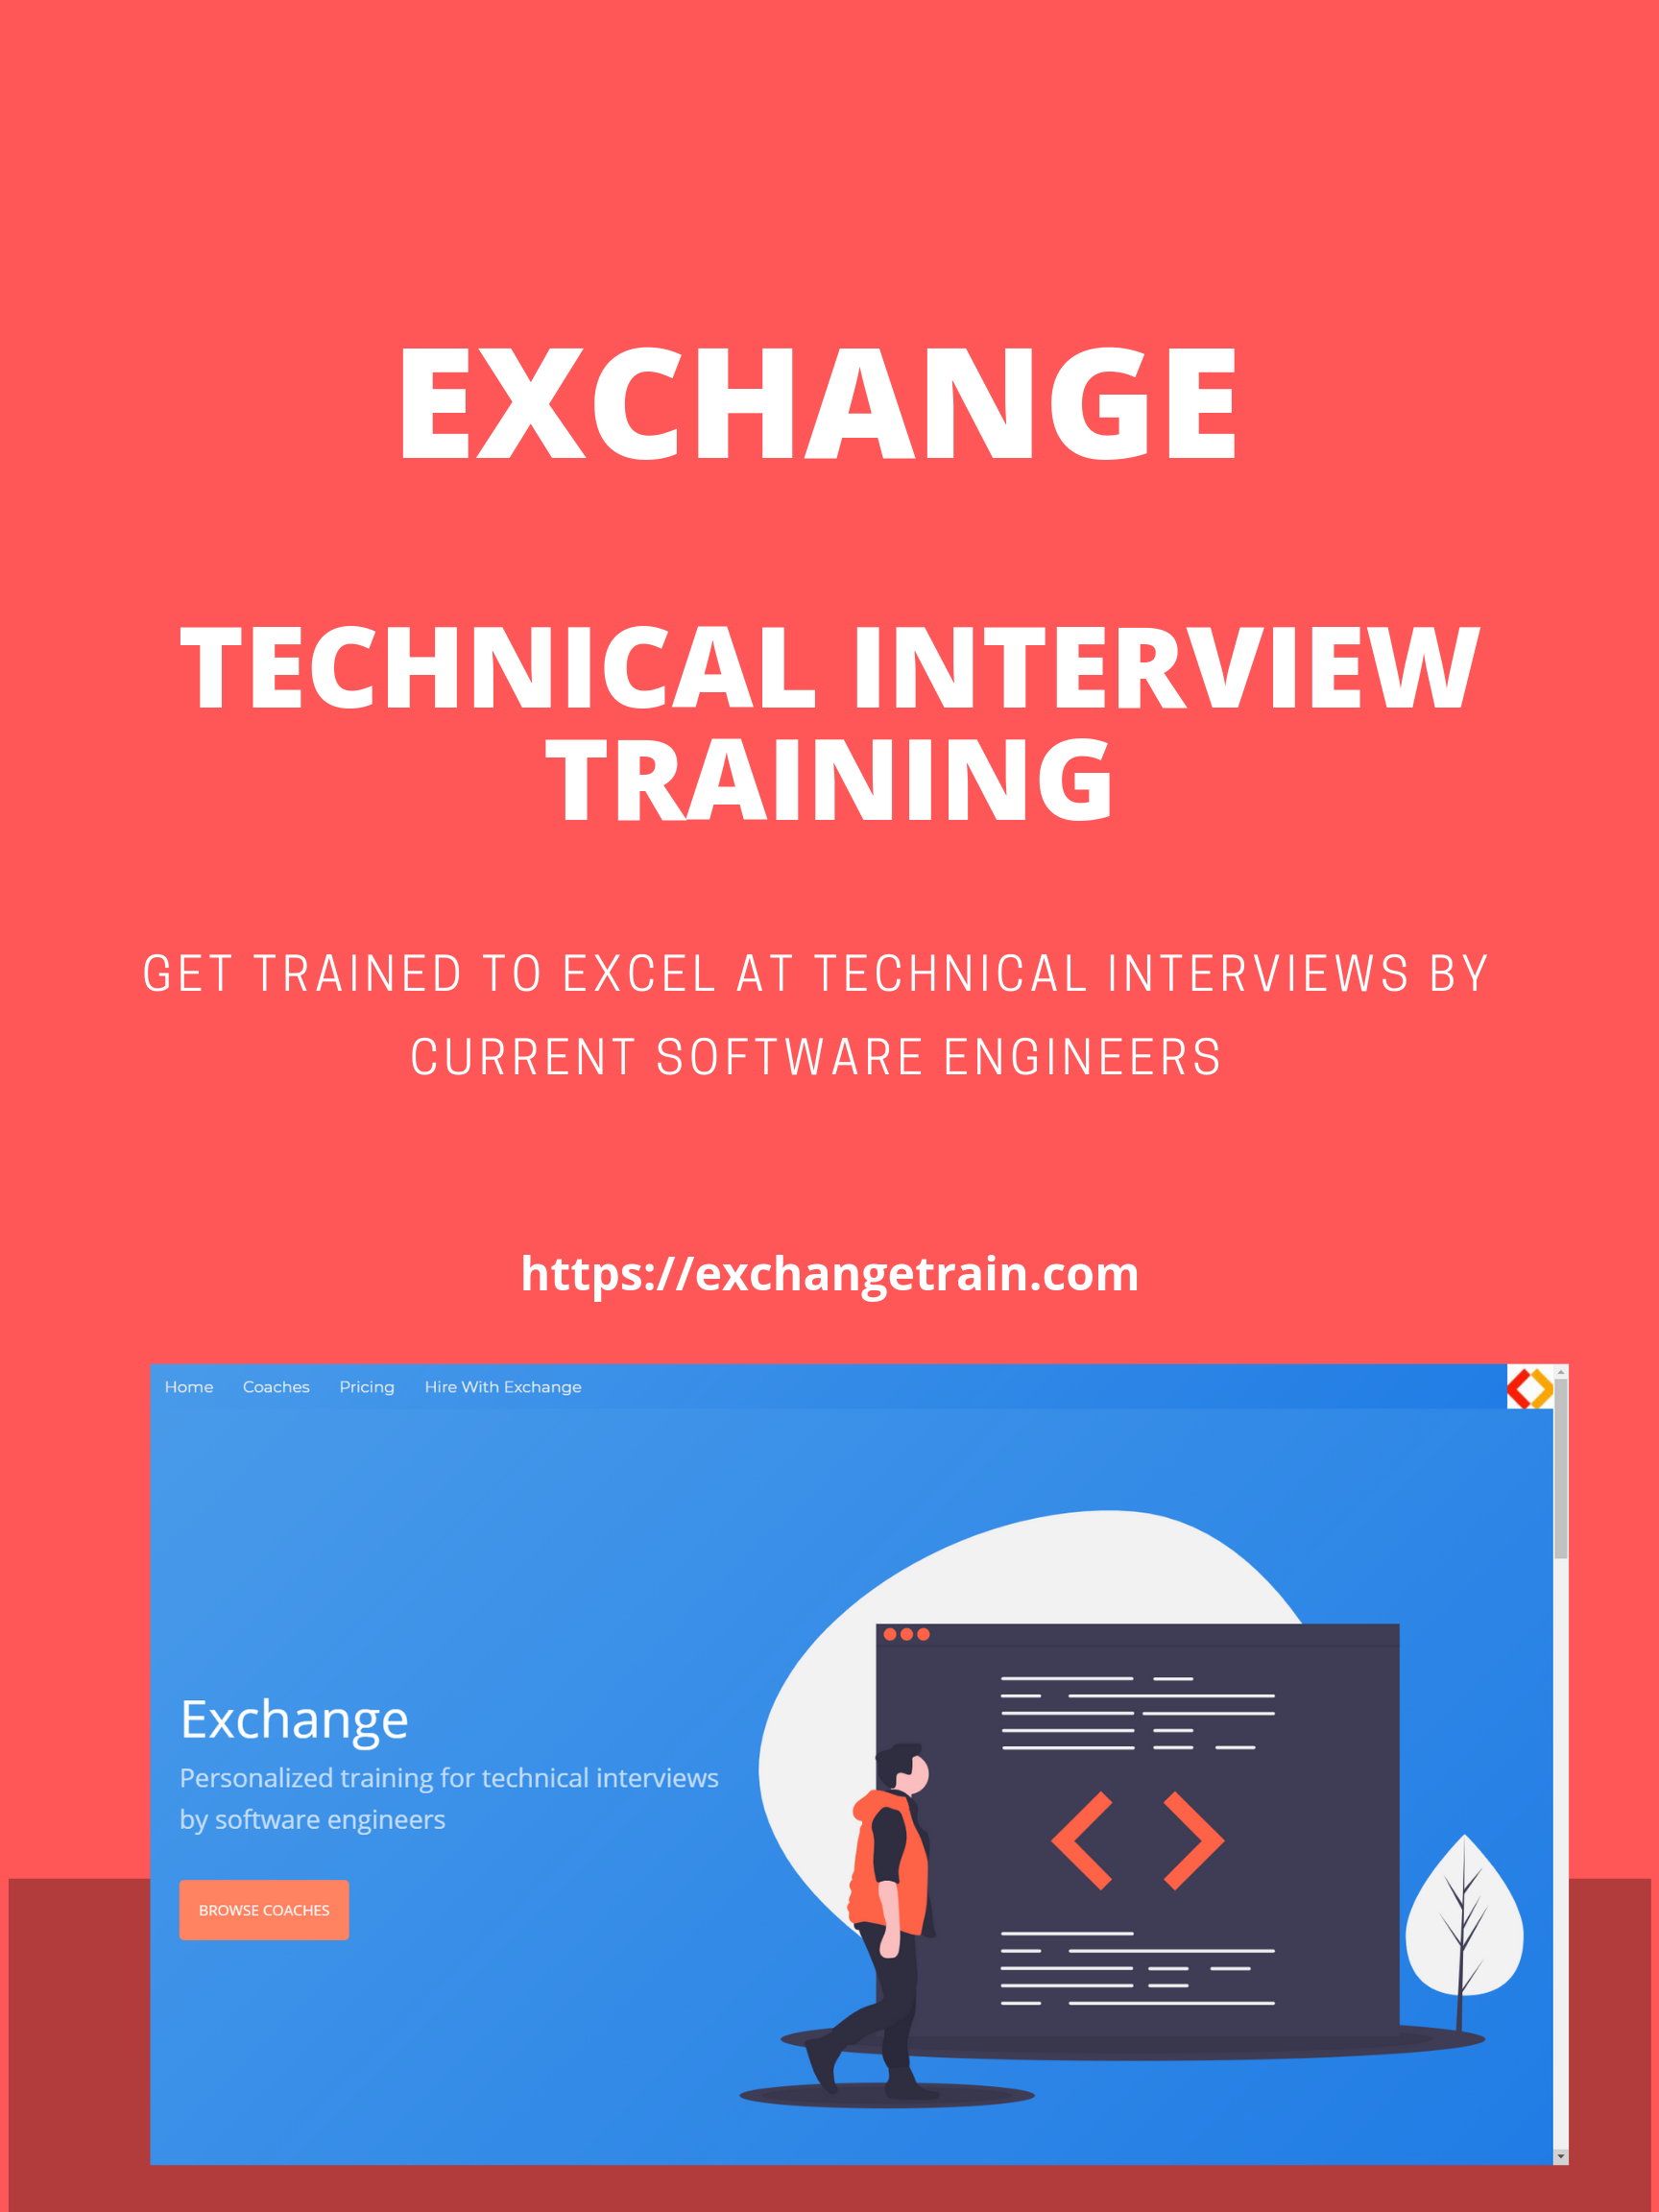 Exchange Marketplace - Technical interview training from software engineers